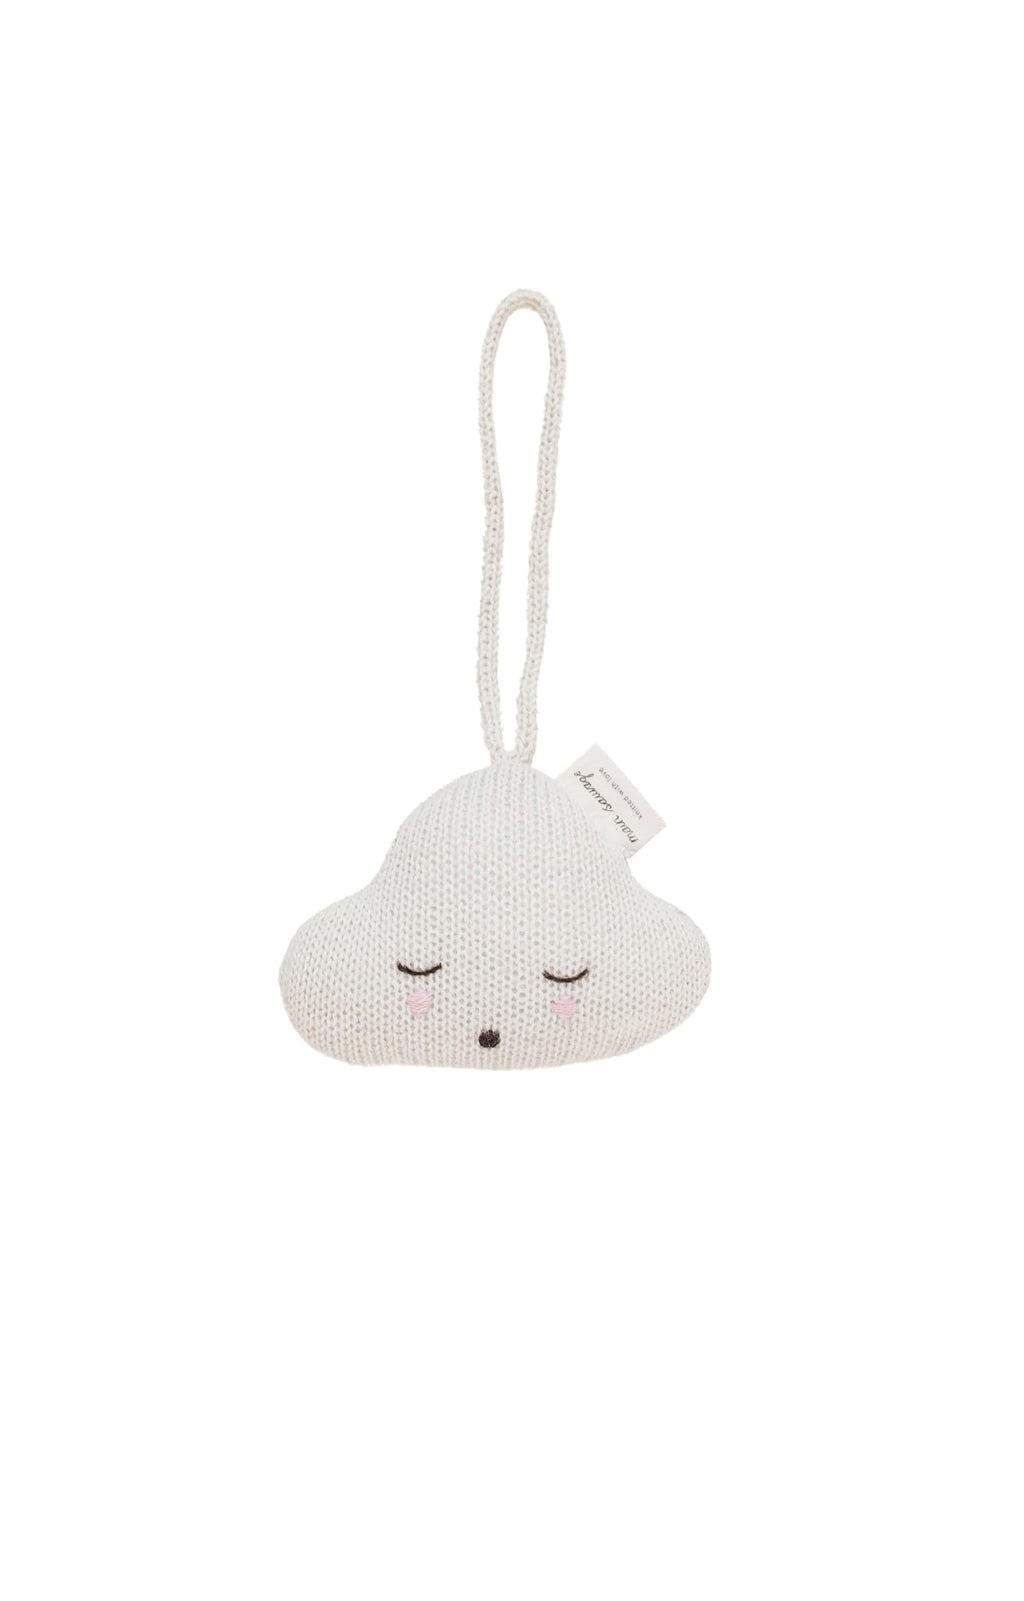 Main Sauvage cloud hanging rattle (Pre-Order Feb)